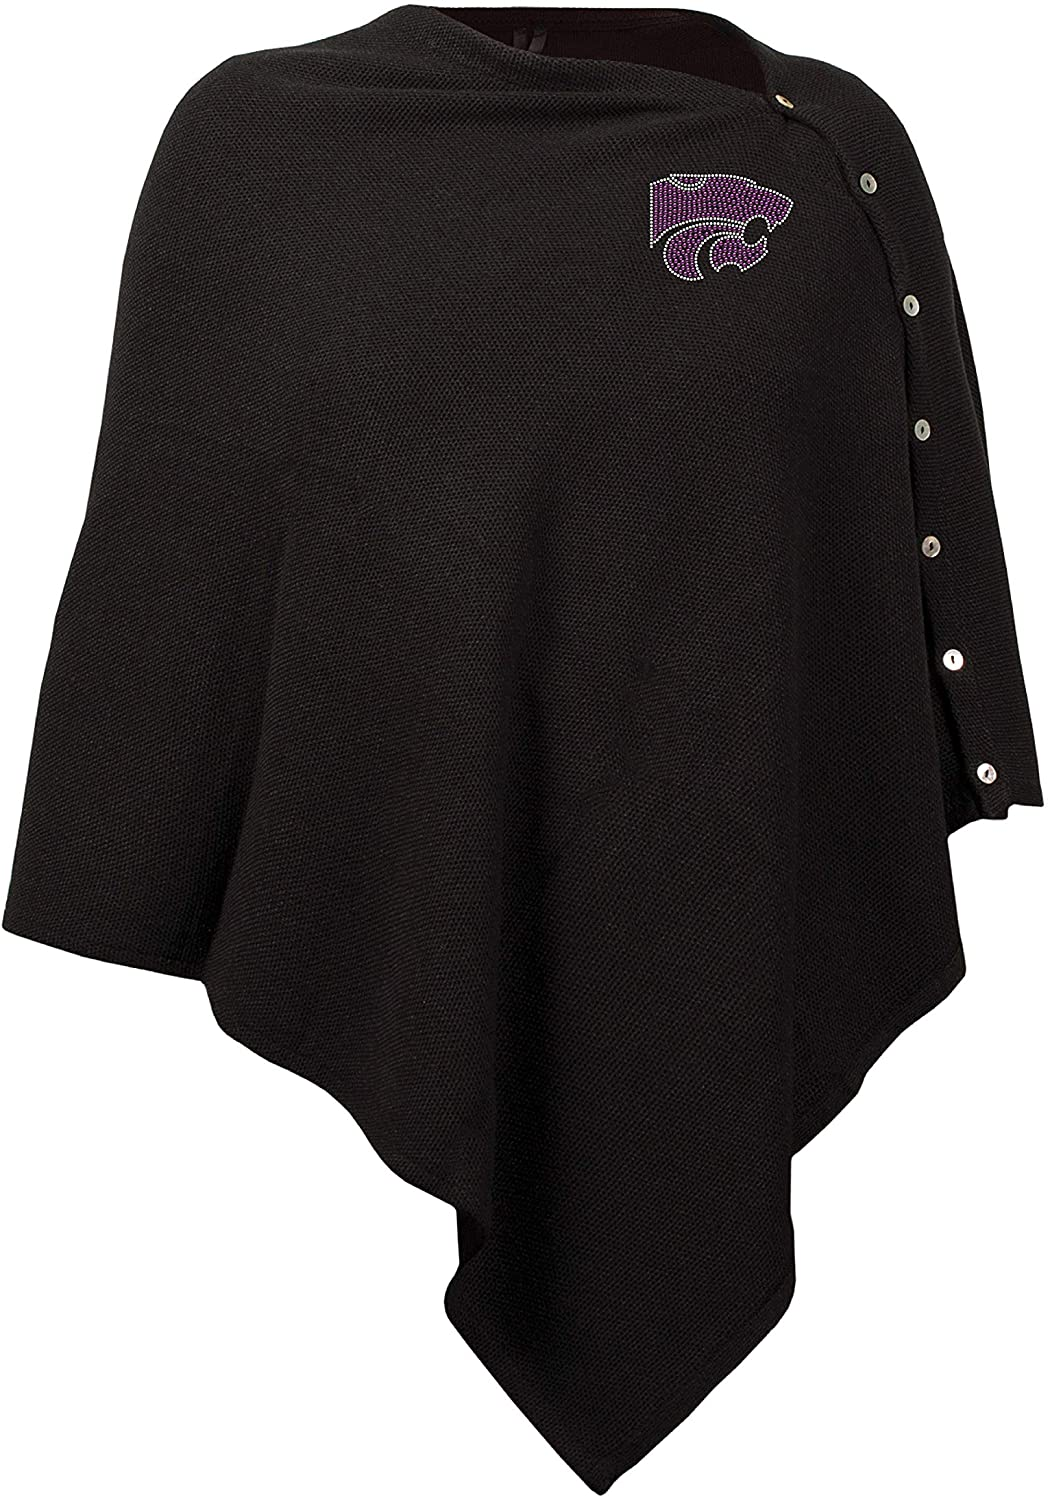 Littlearth NCAA Women's Black Out Button Poncho